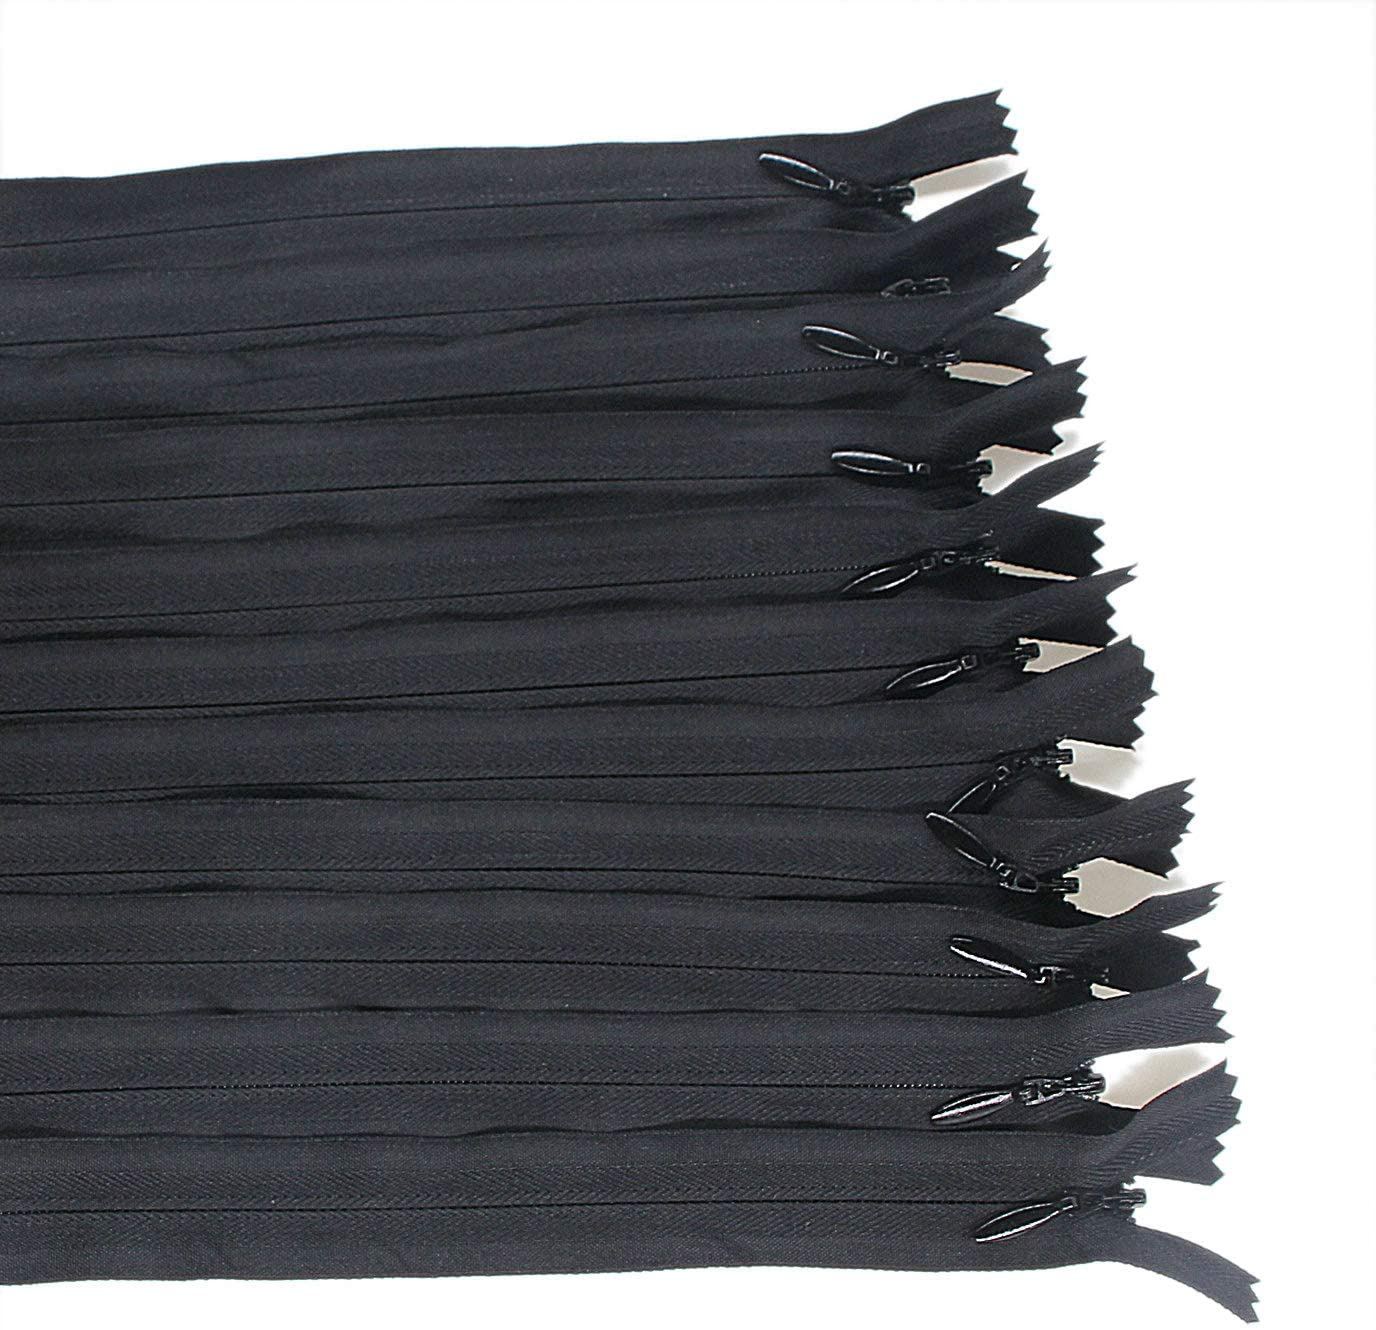 25PCS Invisible Nylon Coil Zipper,Clothing Zipper,DIY Sewing Tools for Craft Special(16 inch,Black) Leekayer